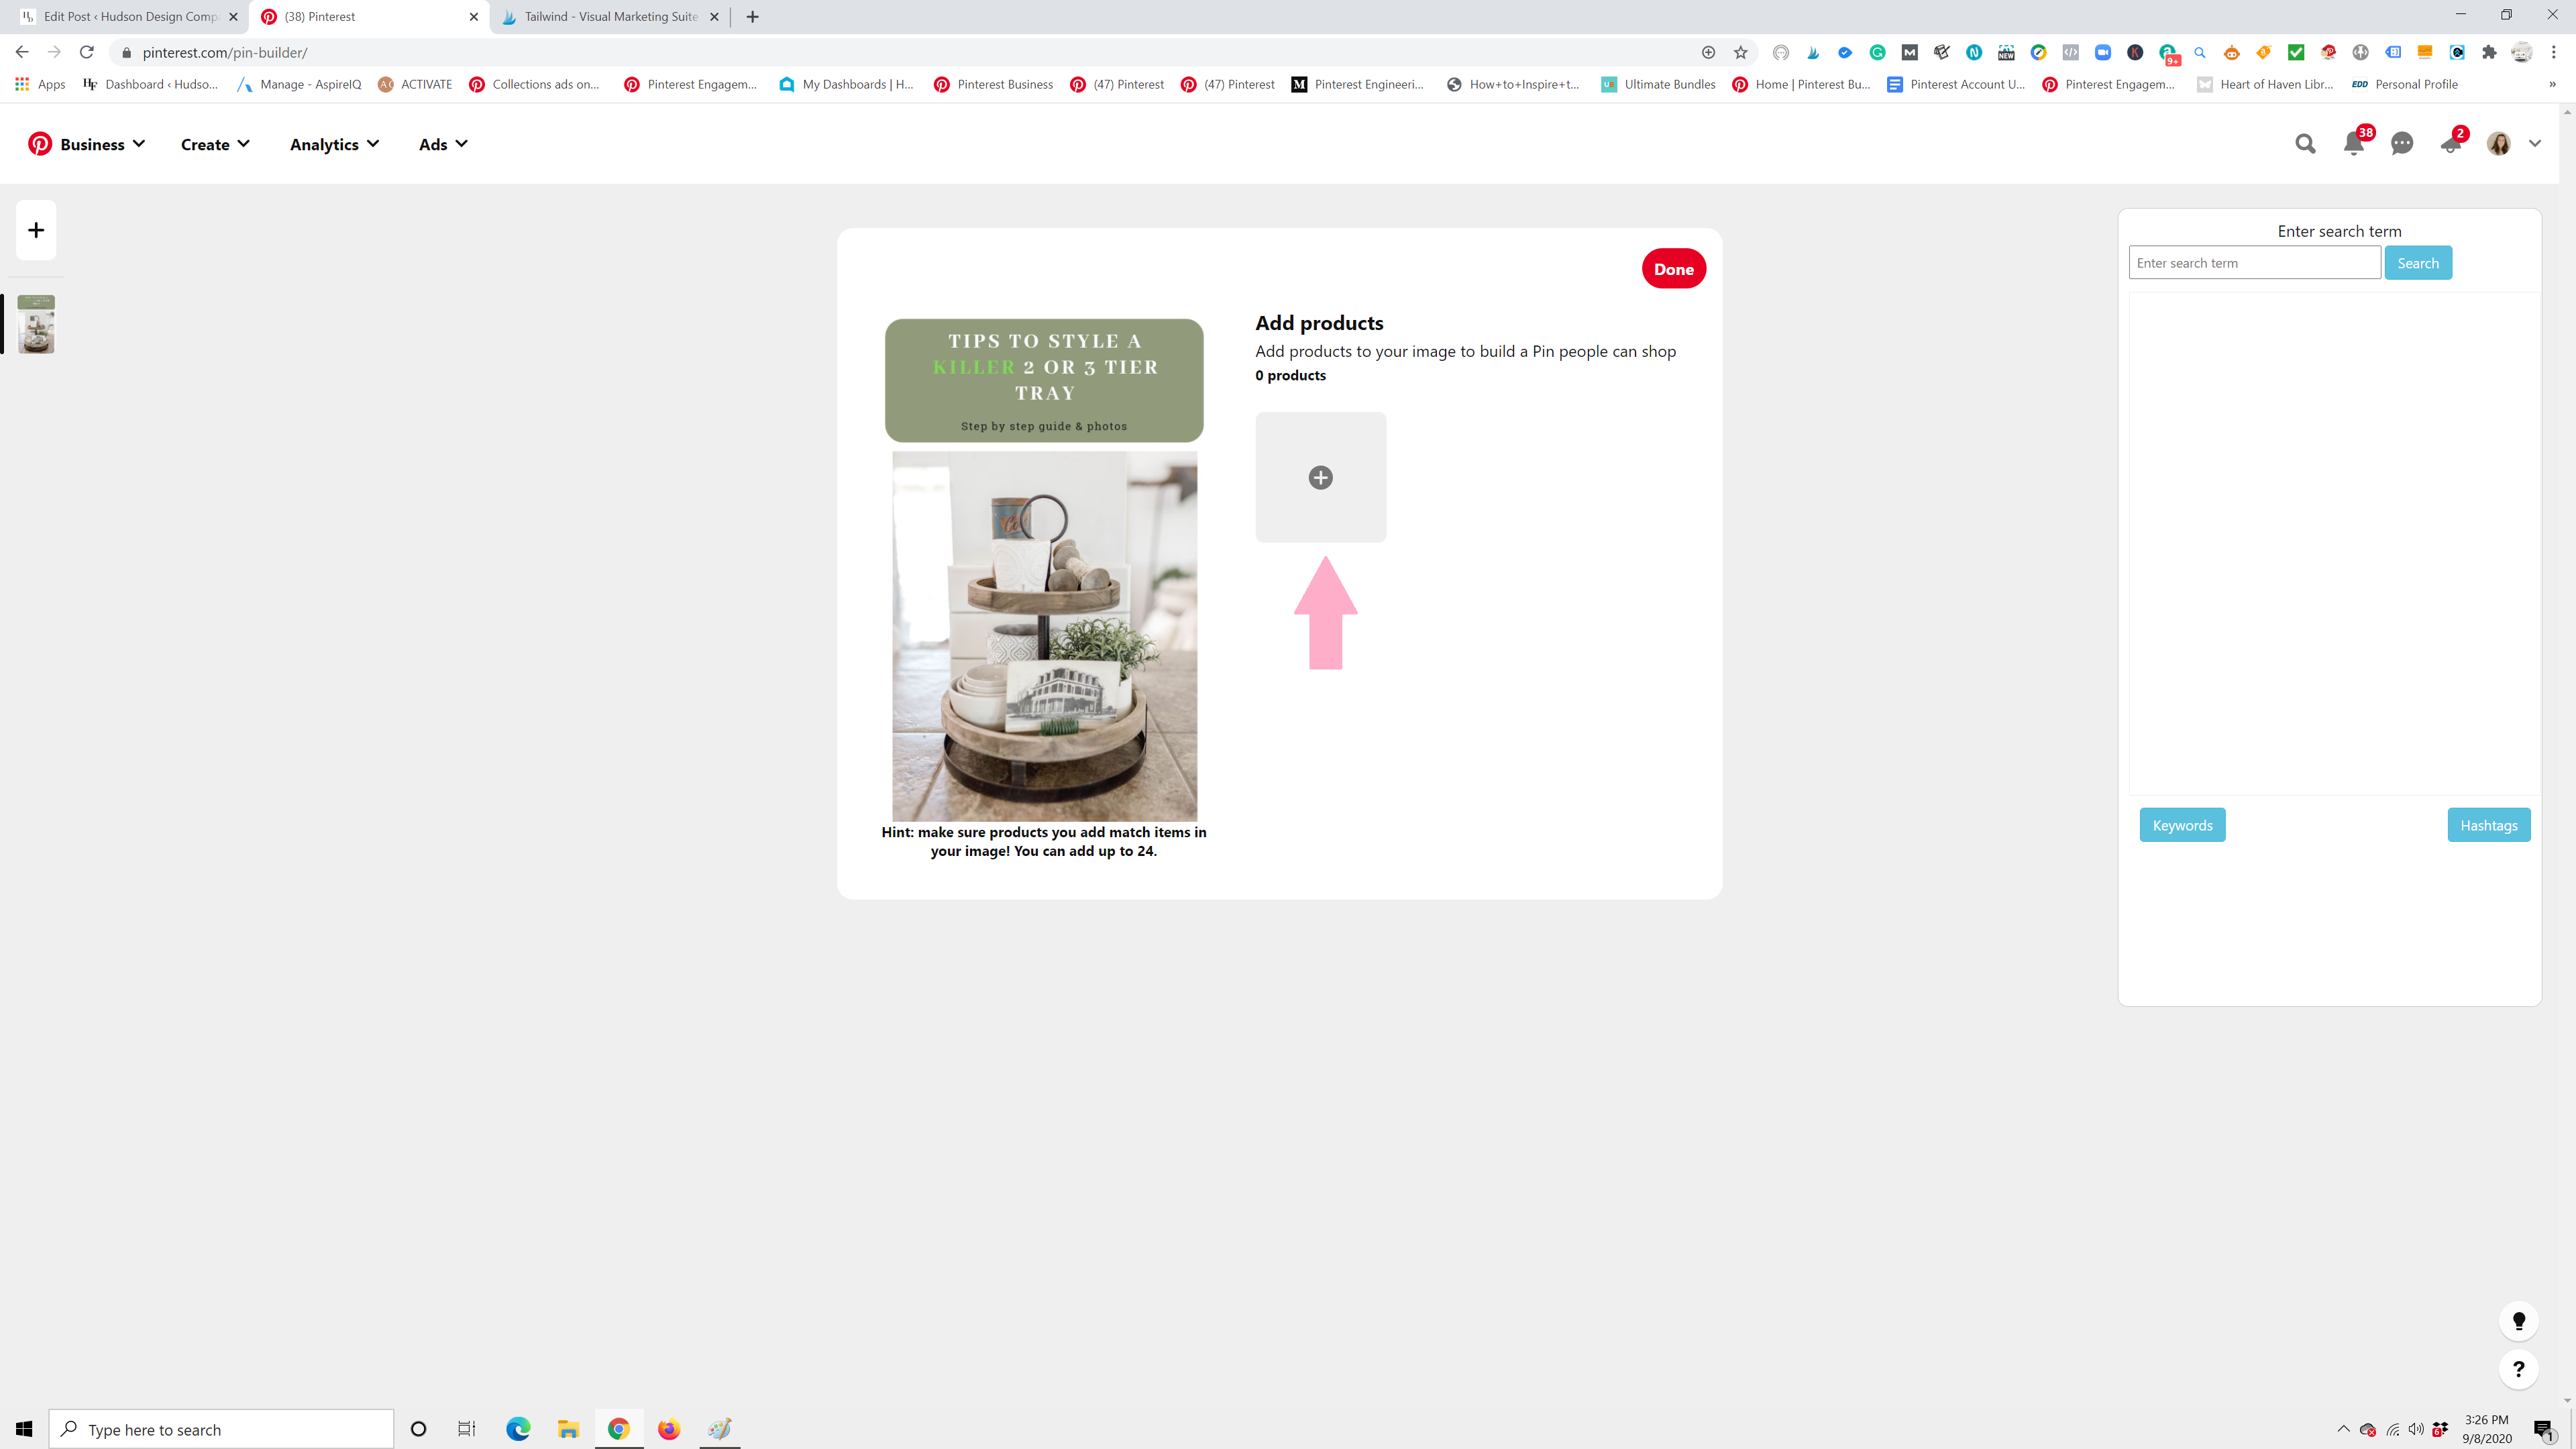 product tagging a pin - How to Tag Products on Pinterest with Clickable URLs - Collection Pins